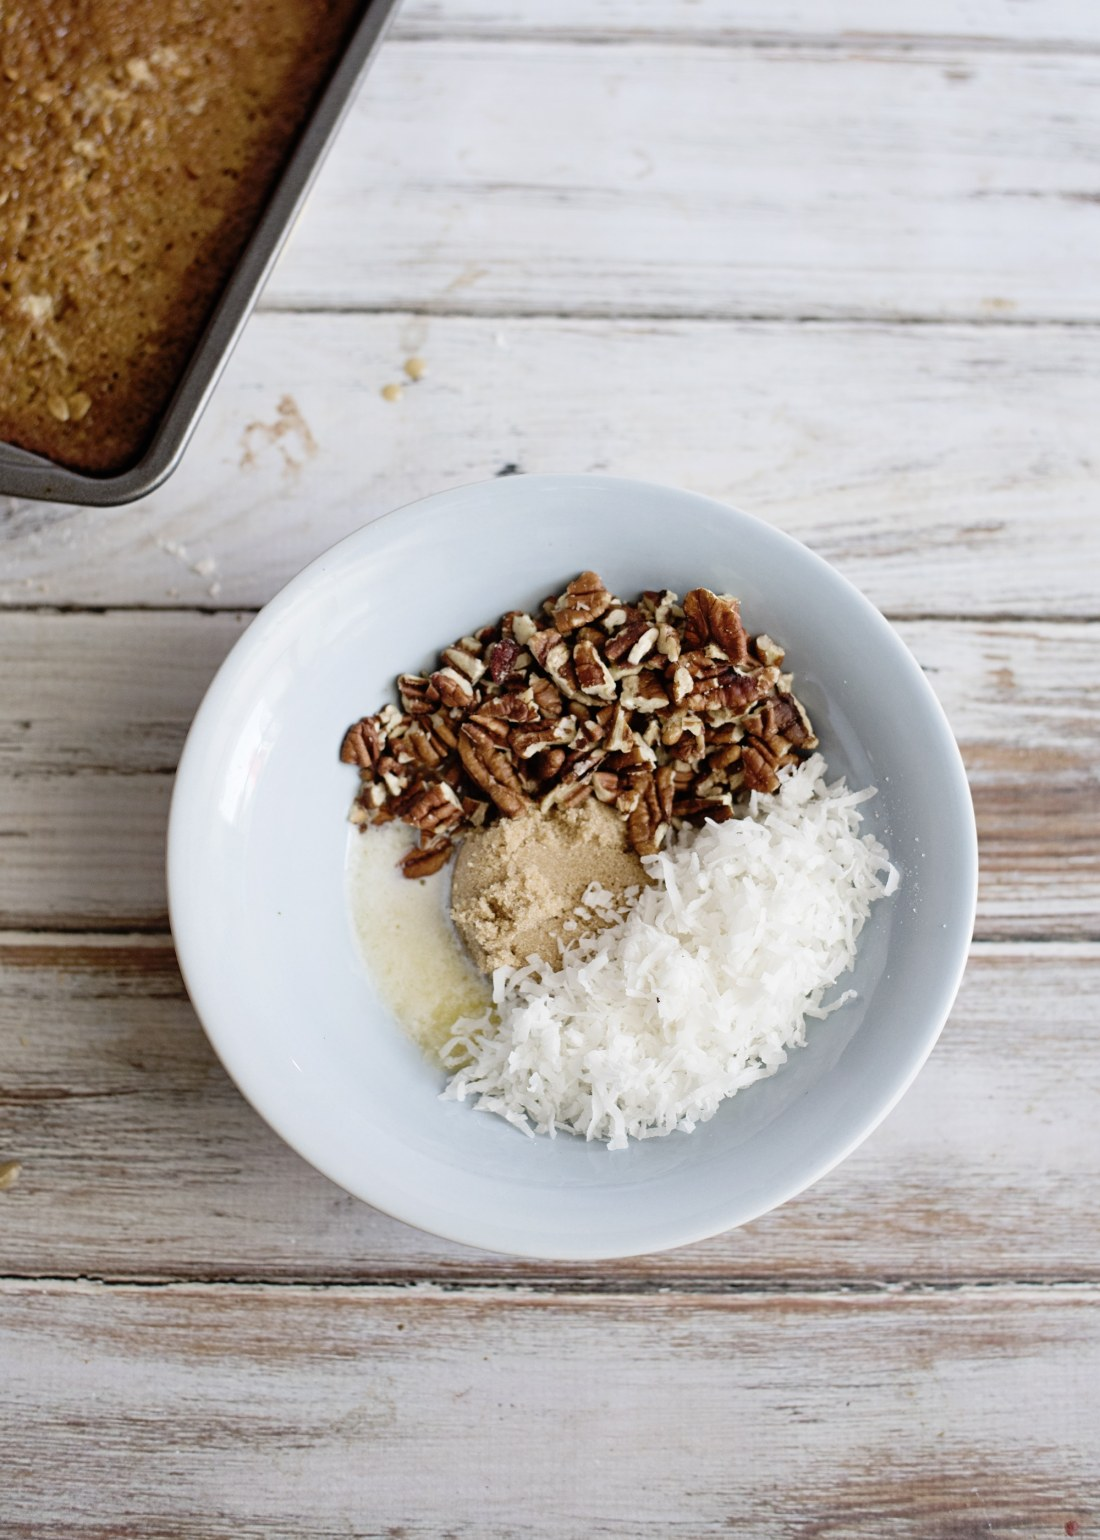 Oatmeal Cake with Coconut Pecan Frosting Step 10 pour coconut, brown sugar and pecans into bowl. Fill your home with the smell of an easy to make Grandma's recipe Oatmeal Cake with Coconut Pecan Frosting.